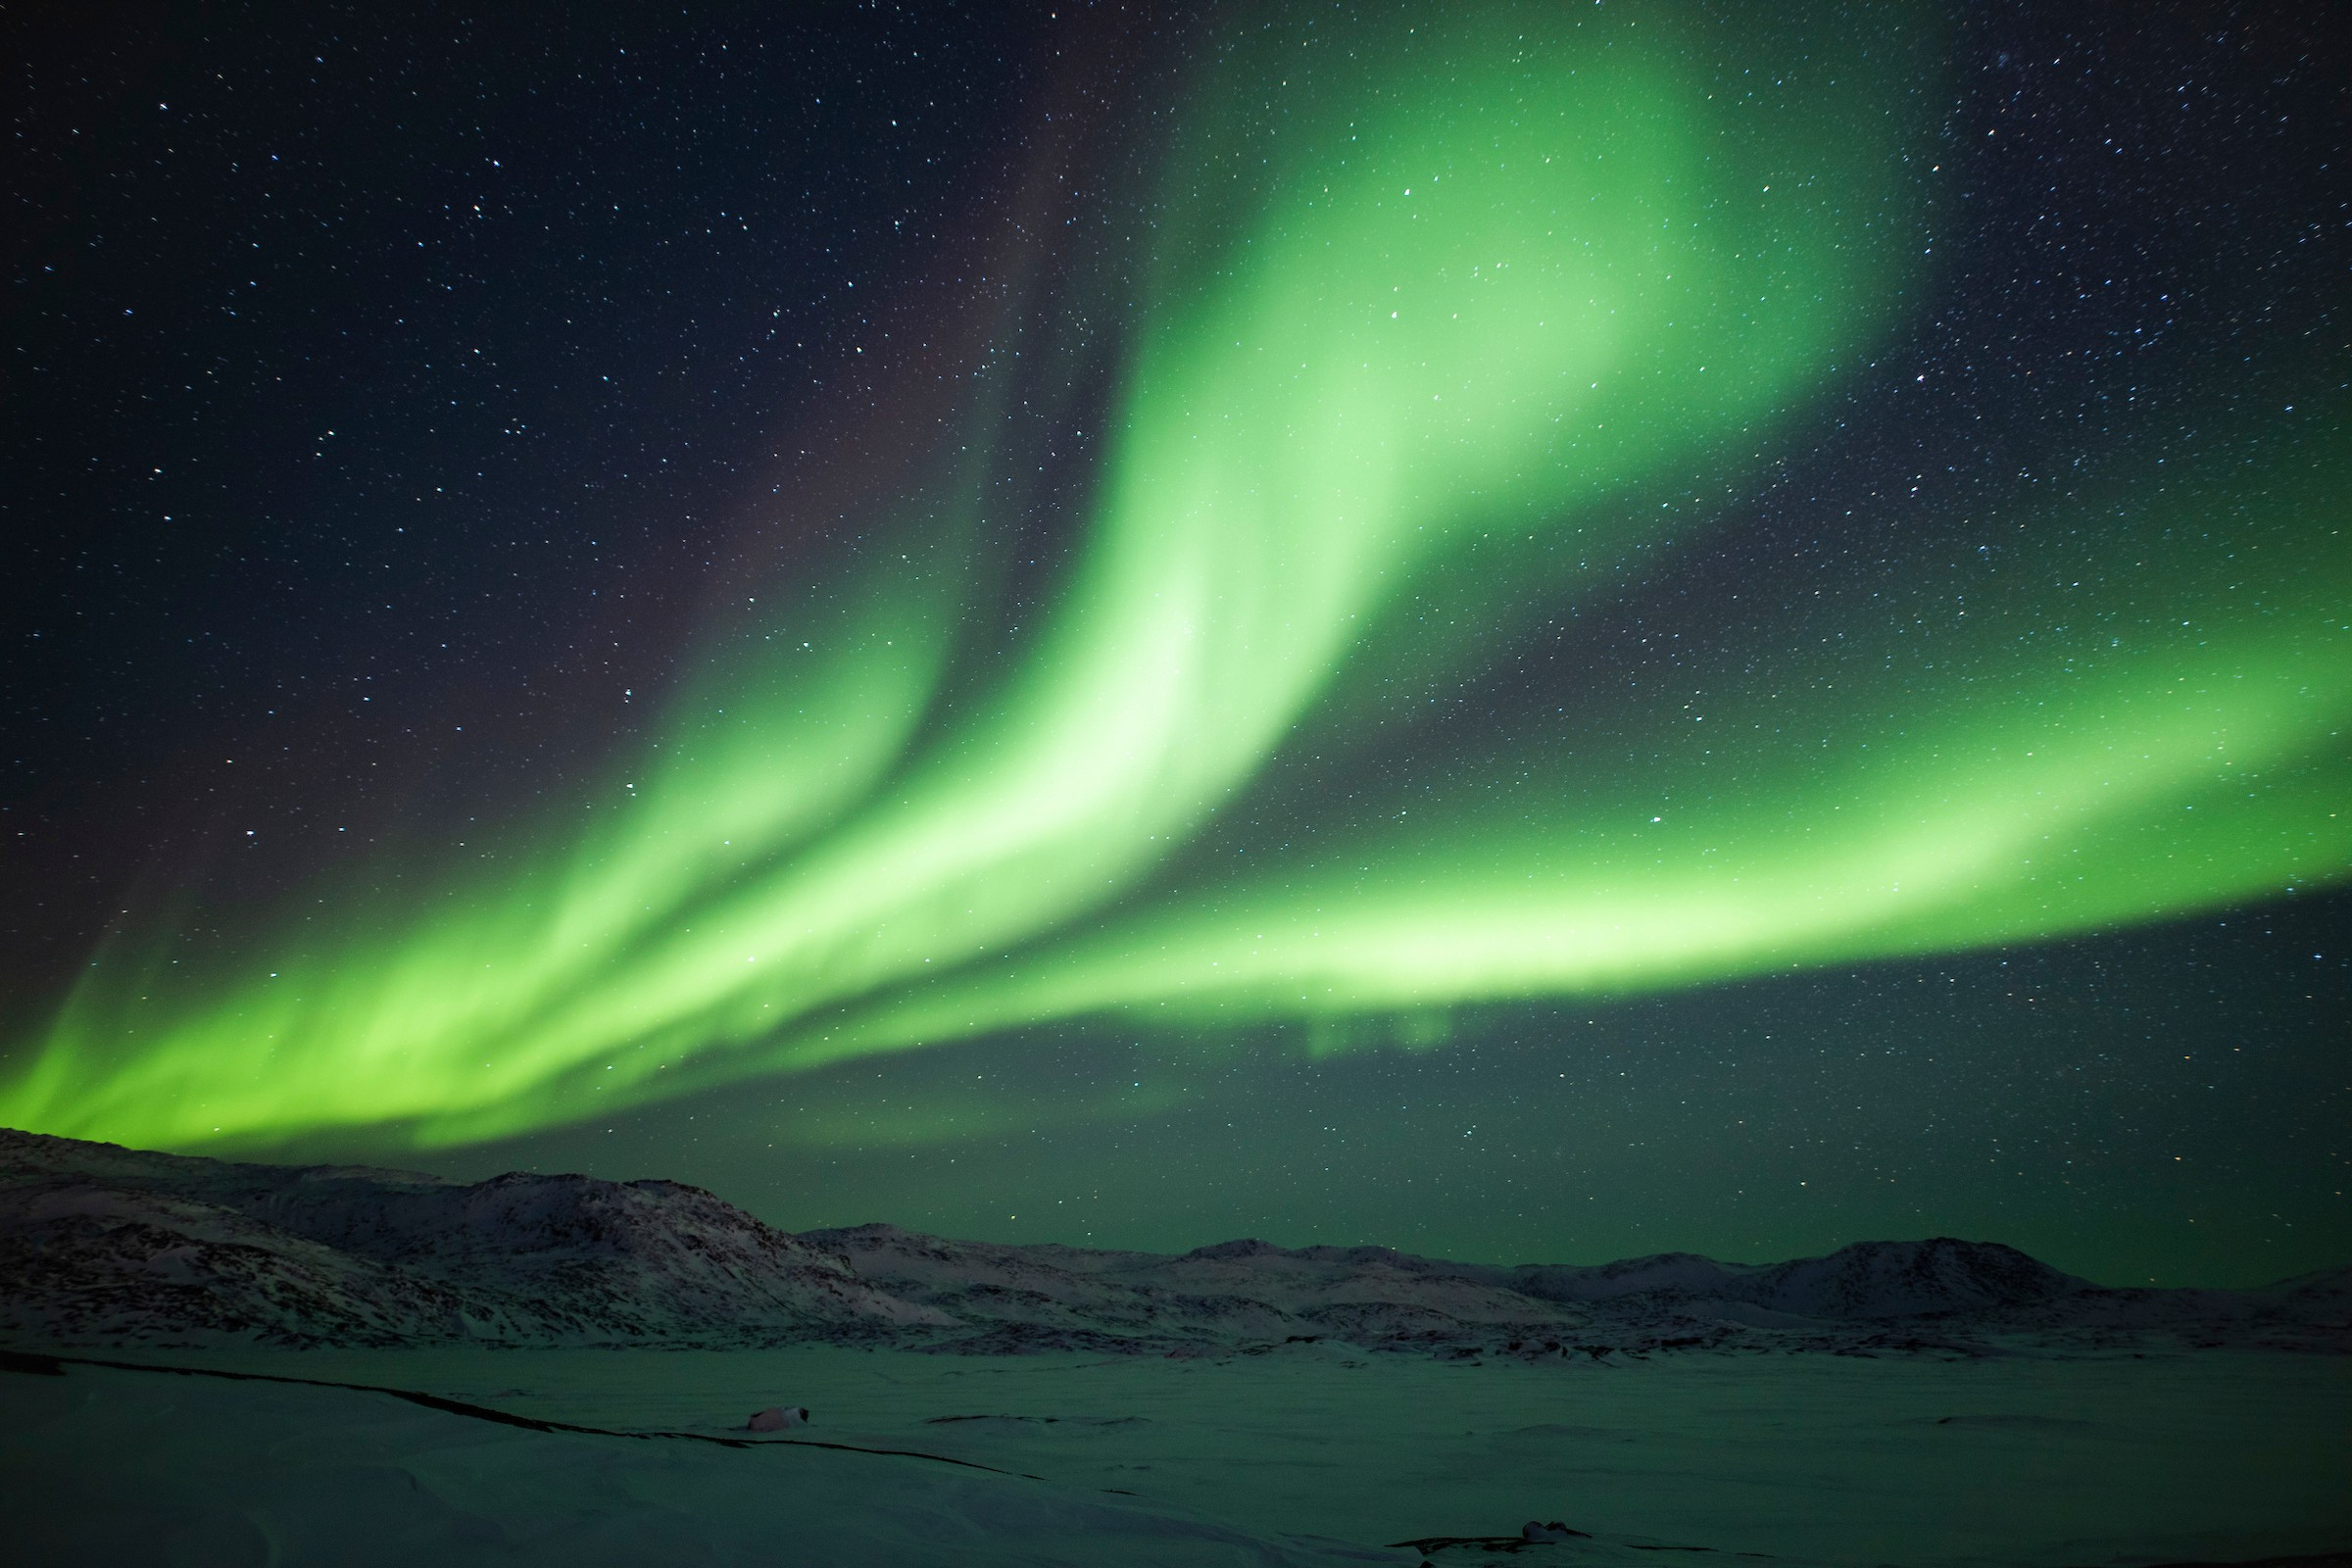 The Northern Light. Photo by Aningaaq R Carlsen - Visit Greenland